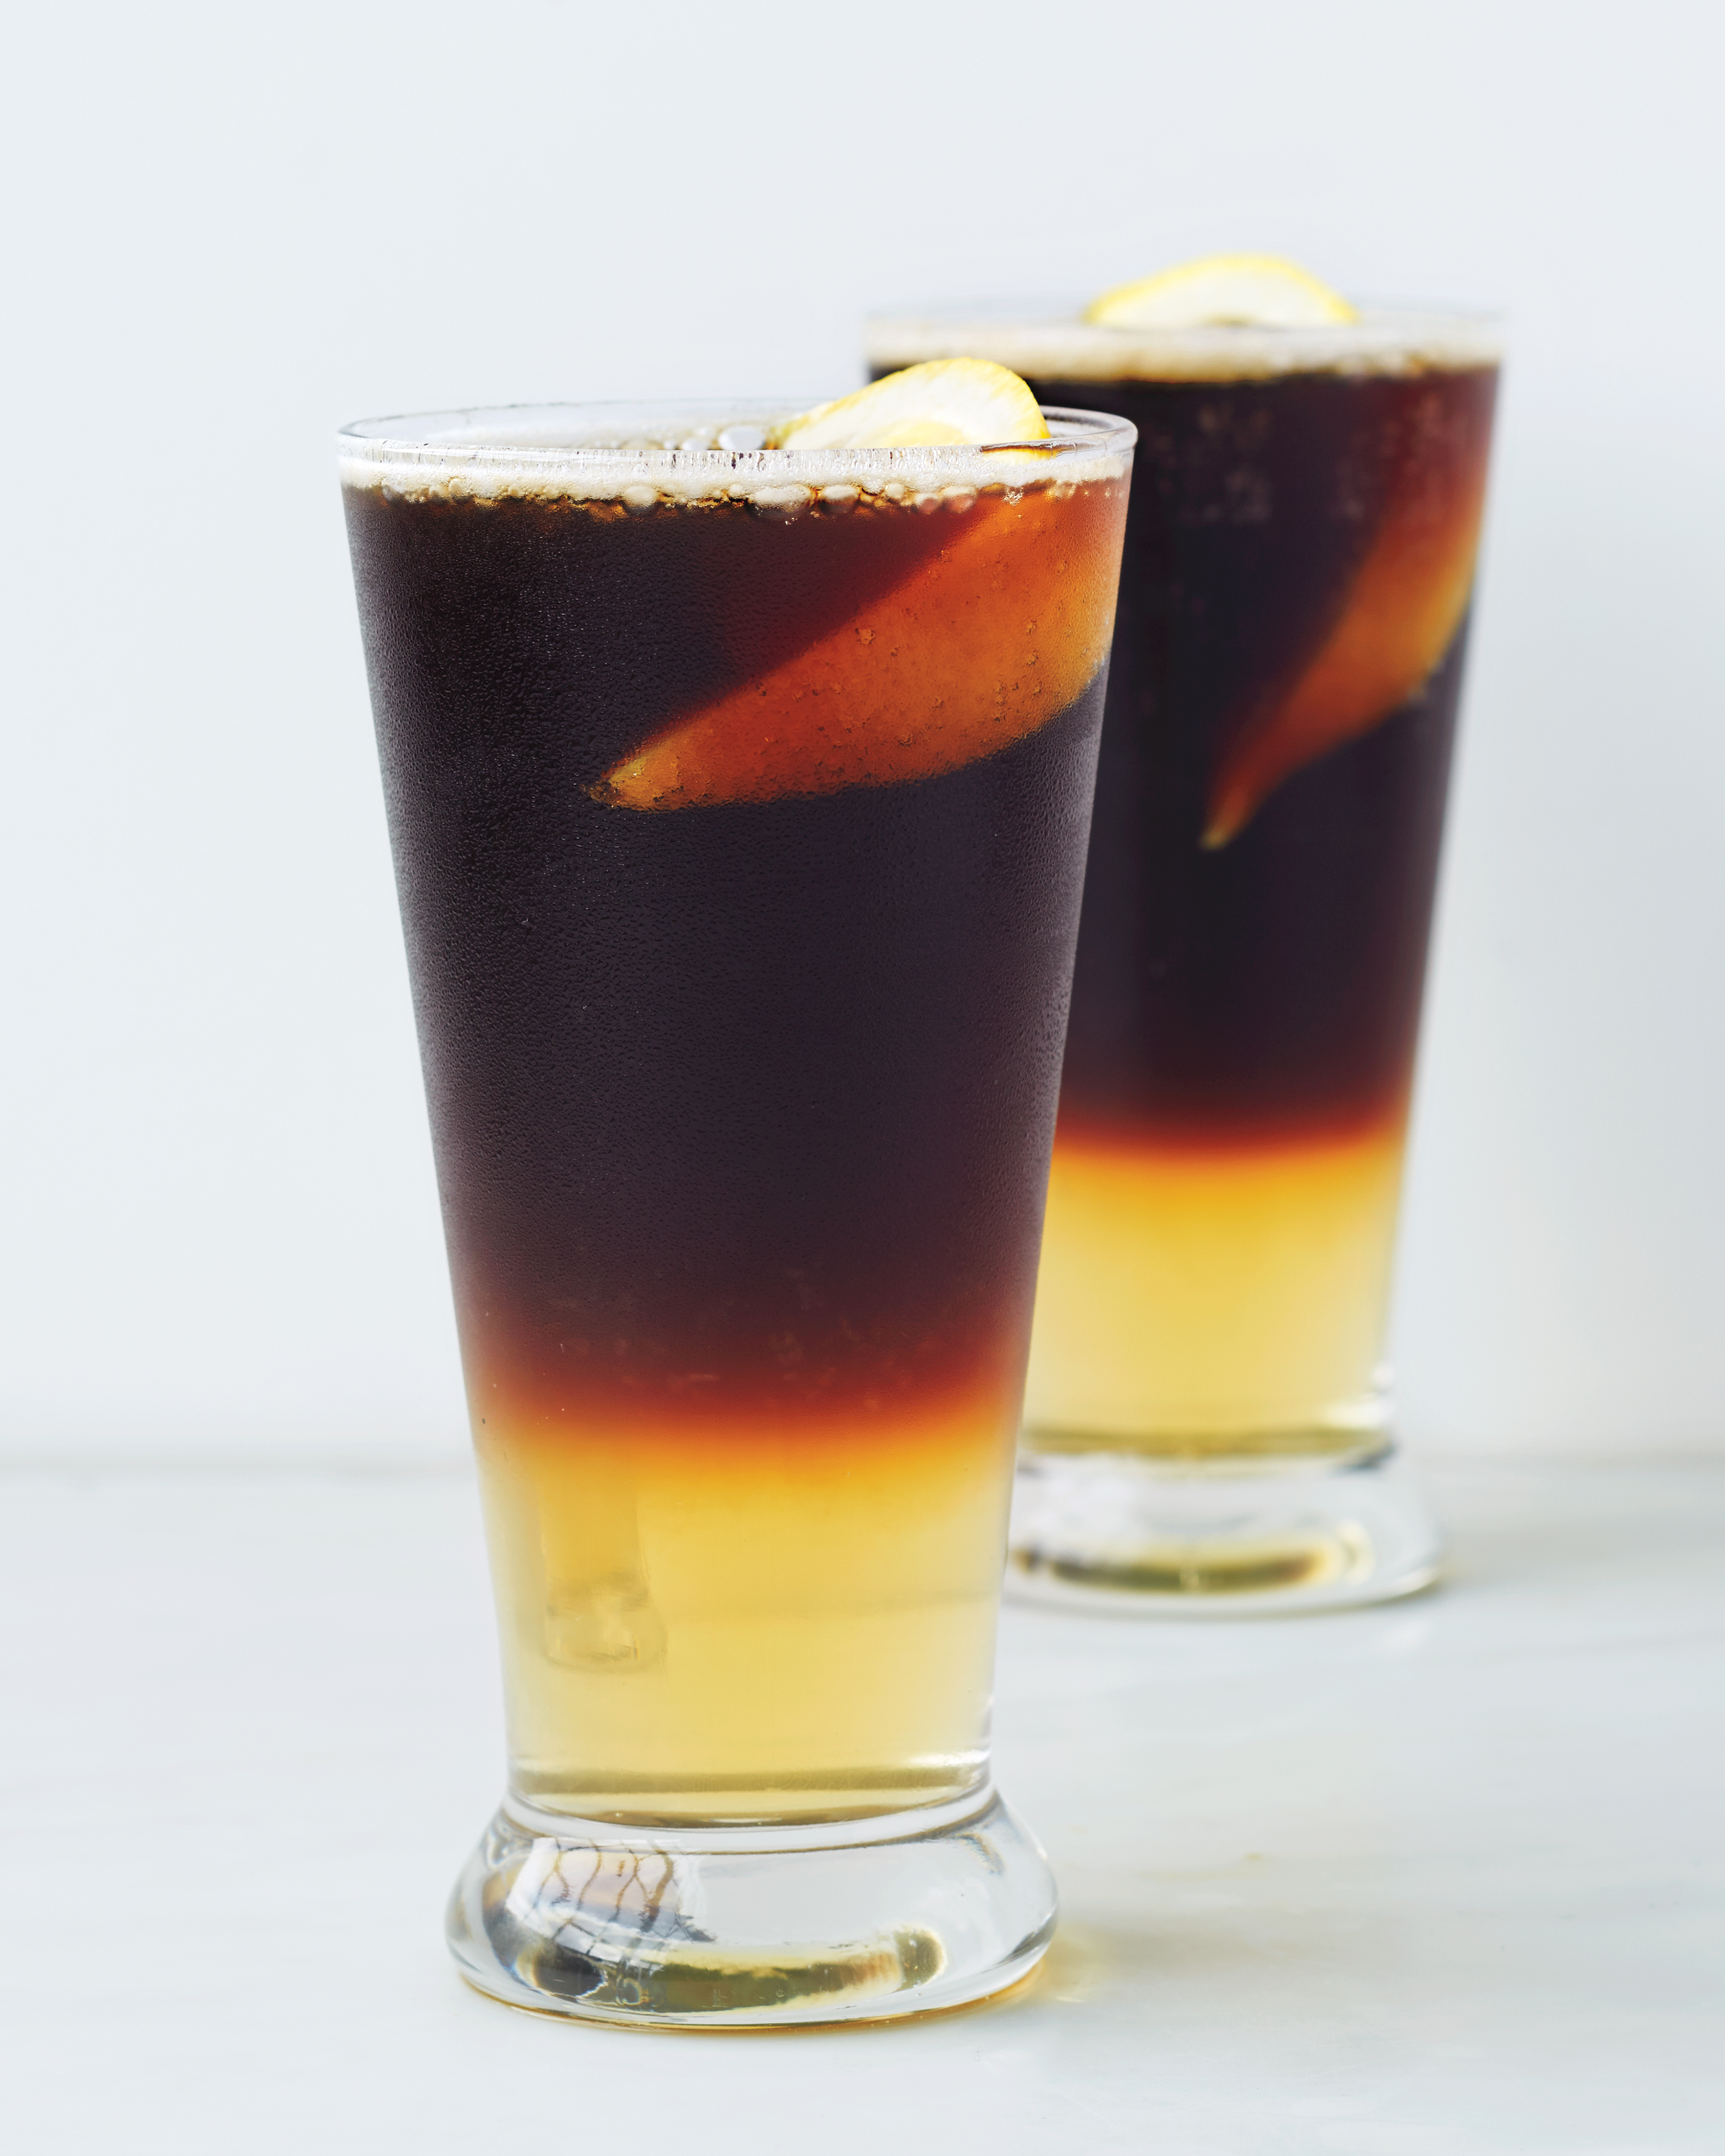 Sparkling Black and Tan